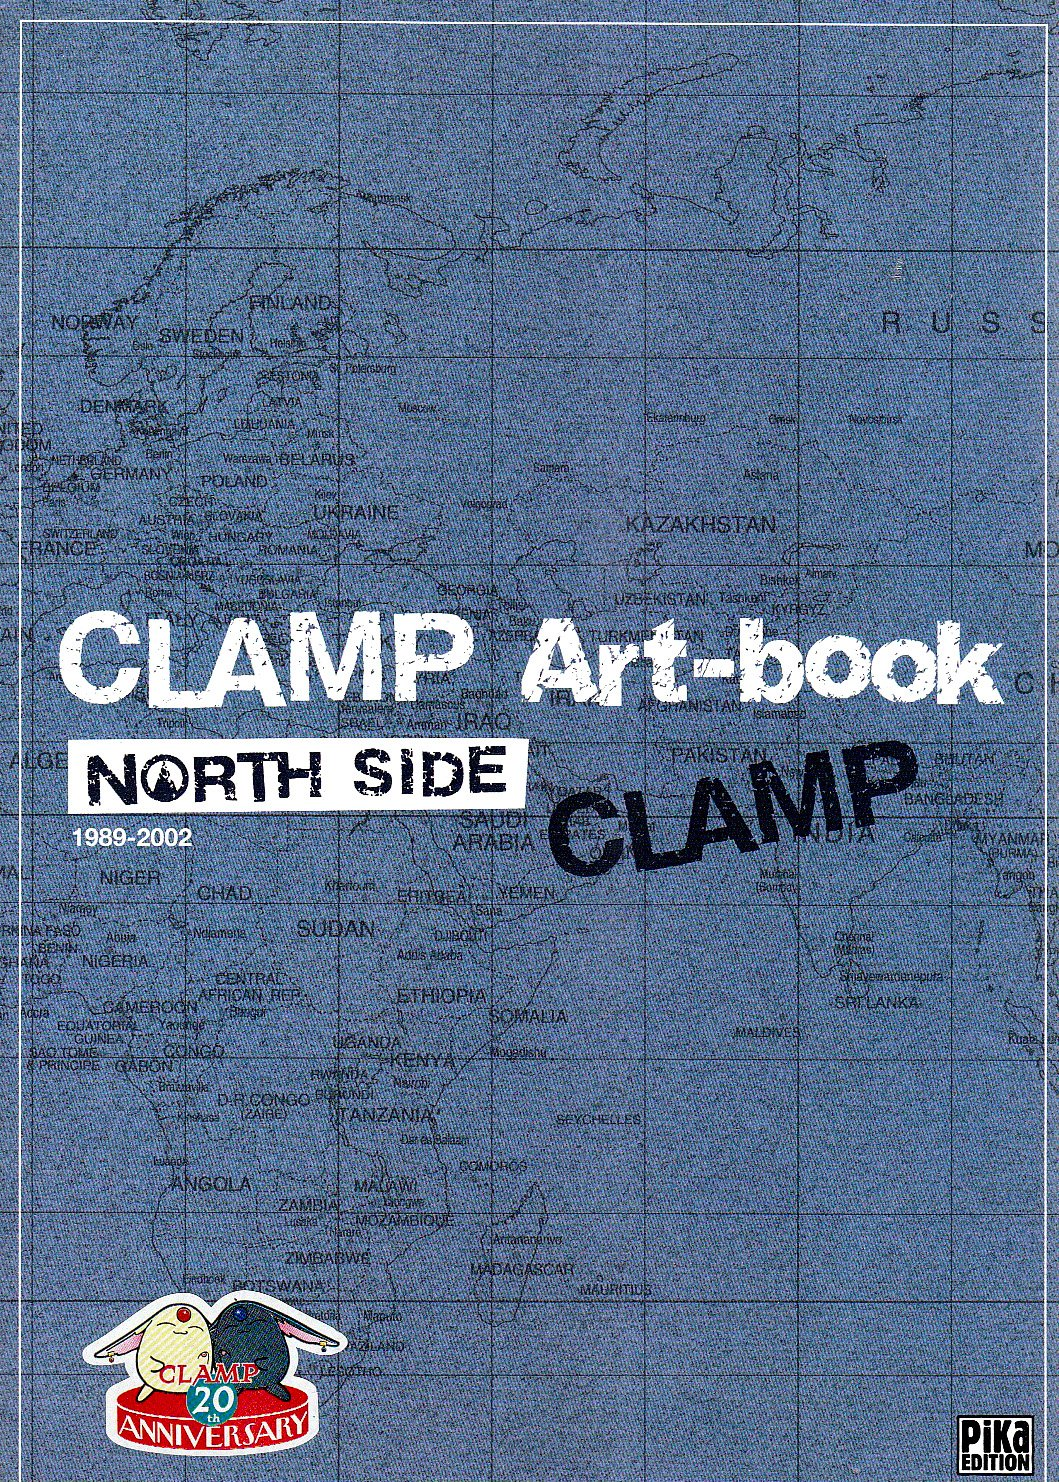 CLAMP North Side : Art-book 1989-2002 Broché – 25 avril 2006 Editions Pika 2845995377 Comics & mangas Mangas divers